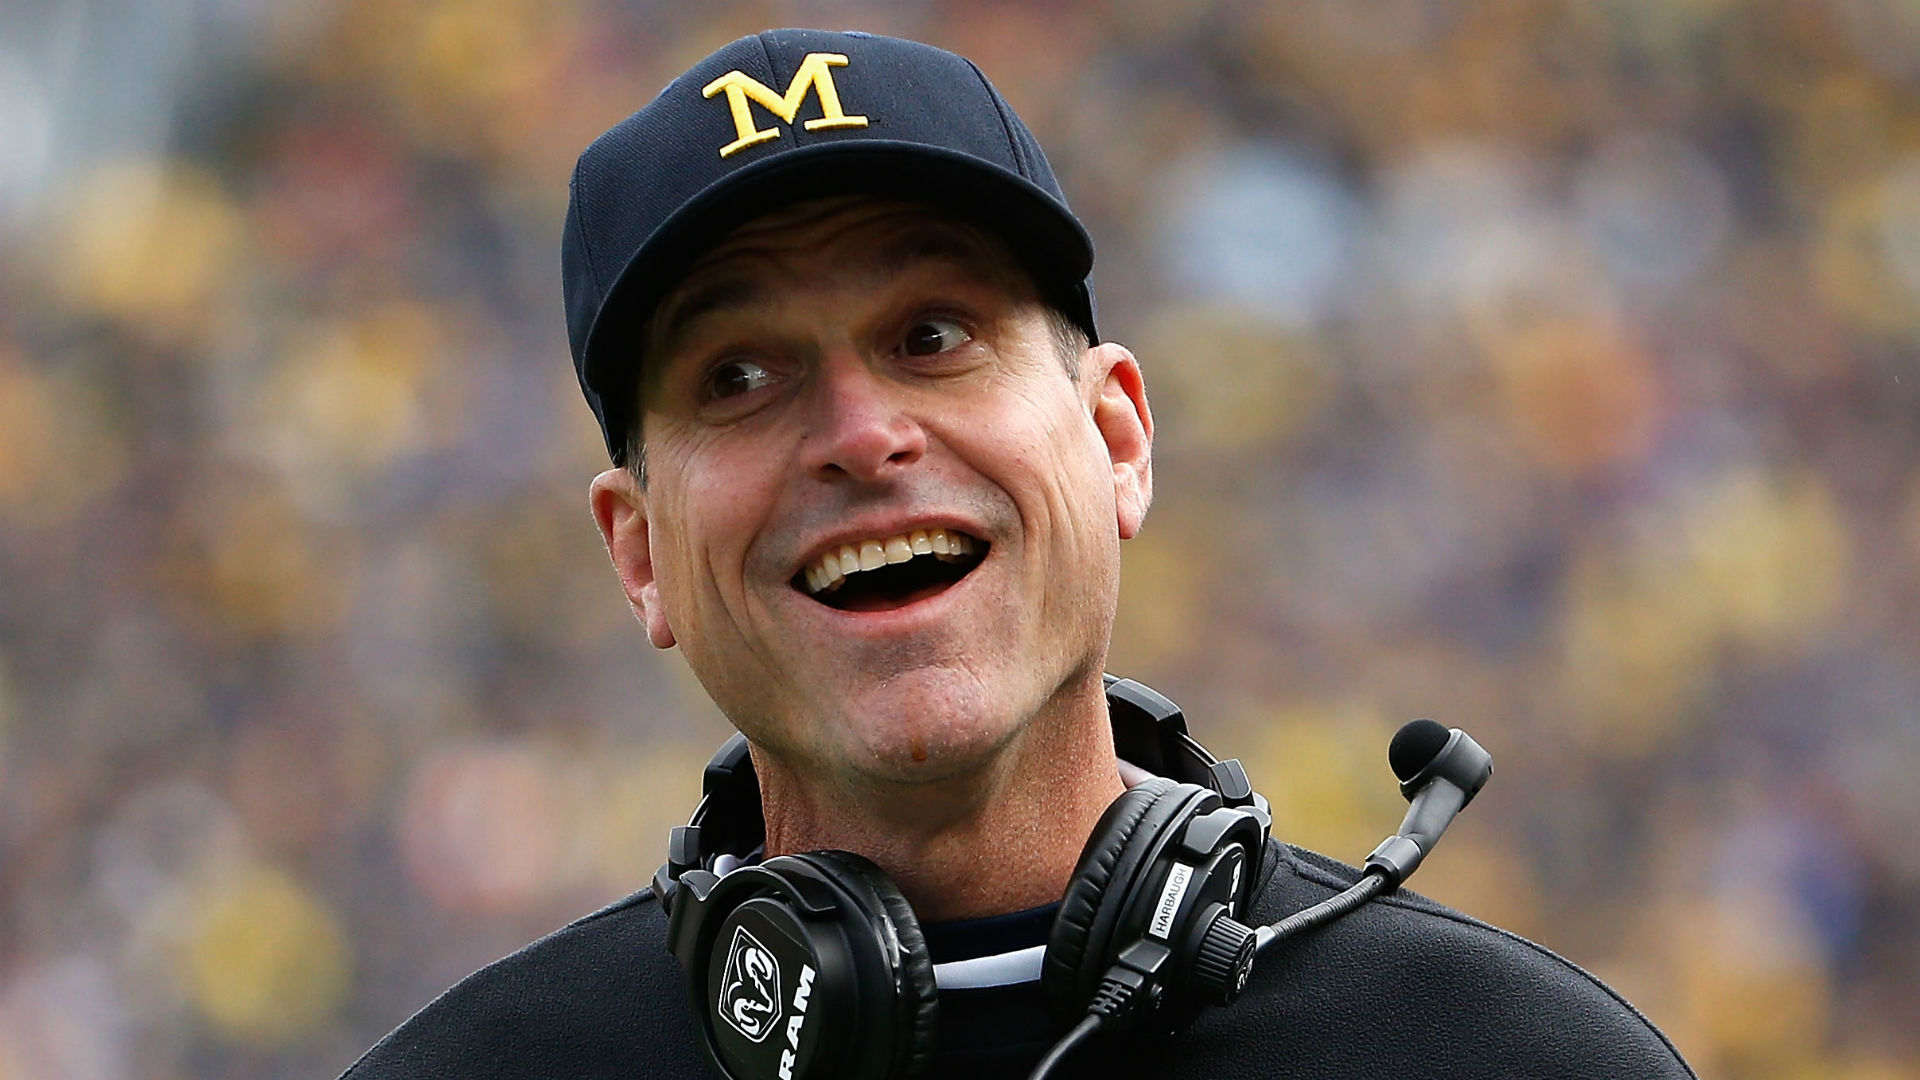 Michigan Coach Jim Harbaugh: A Hot Topic On The Paul